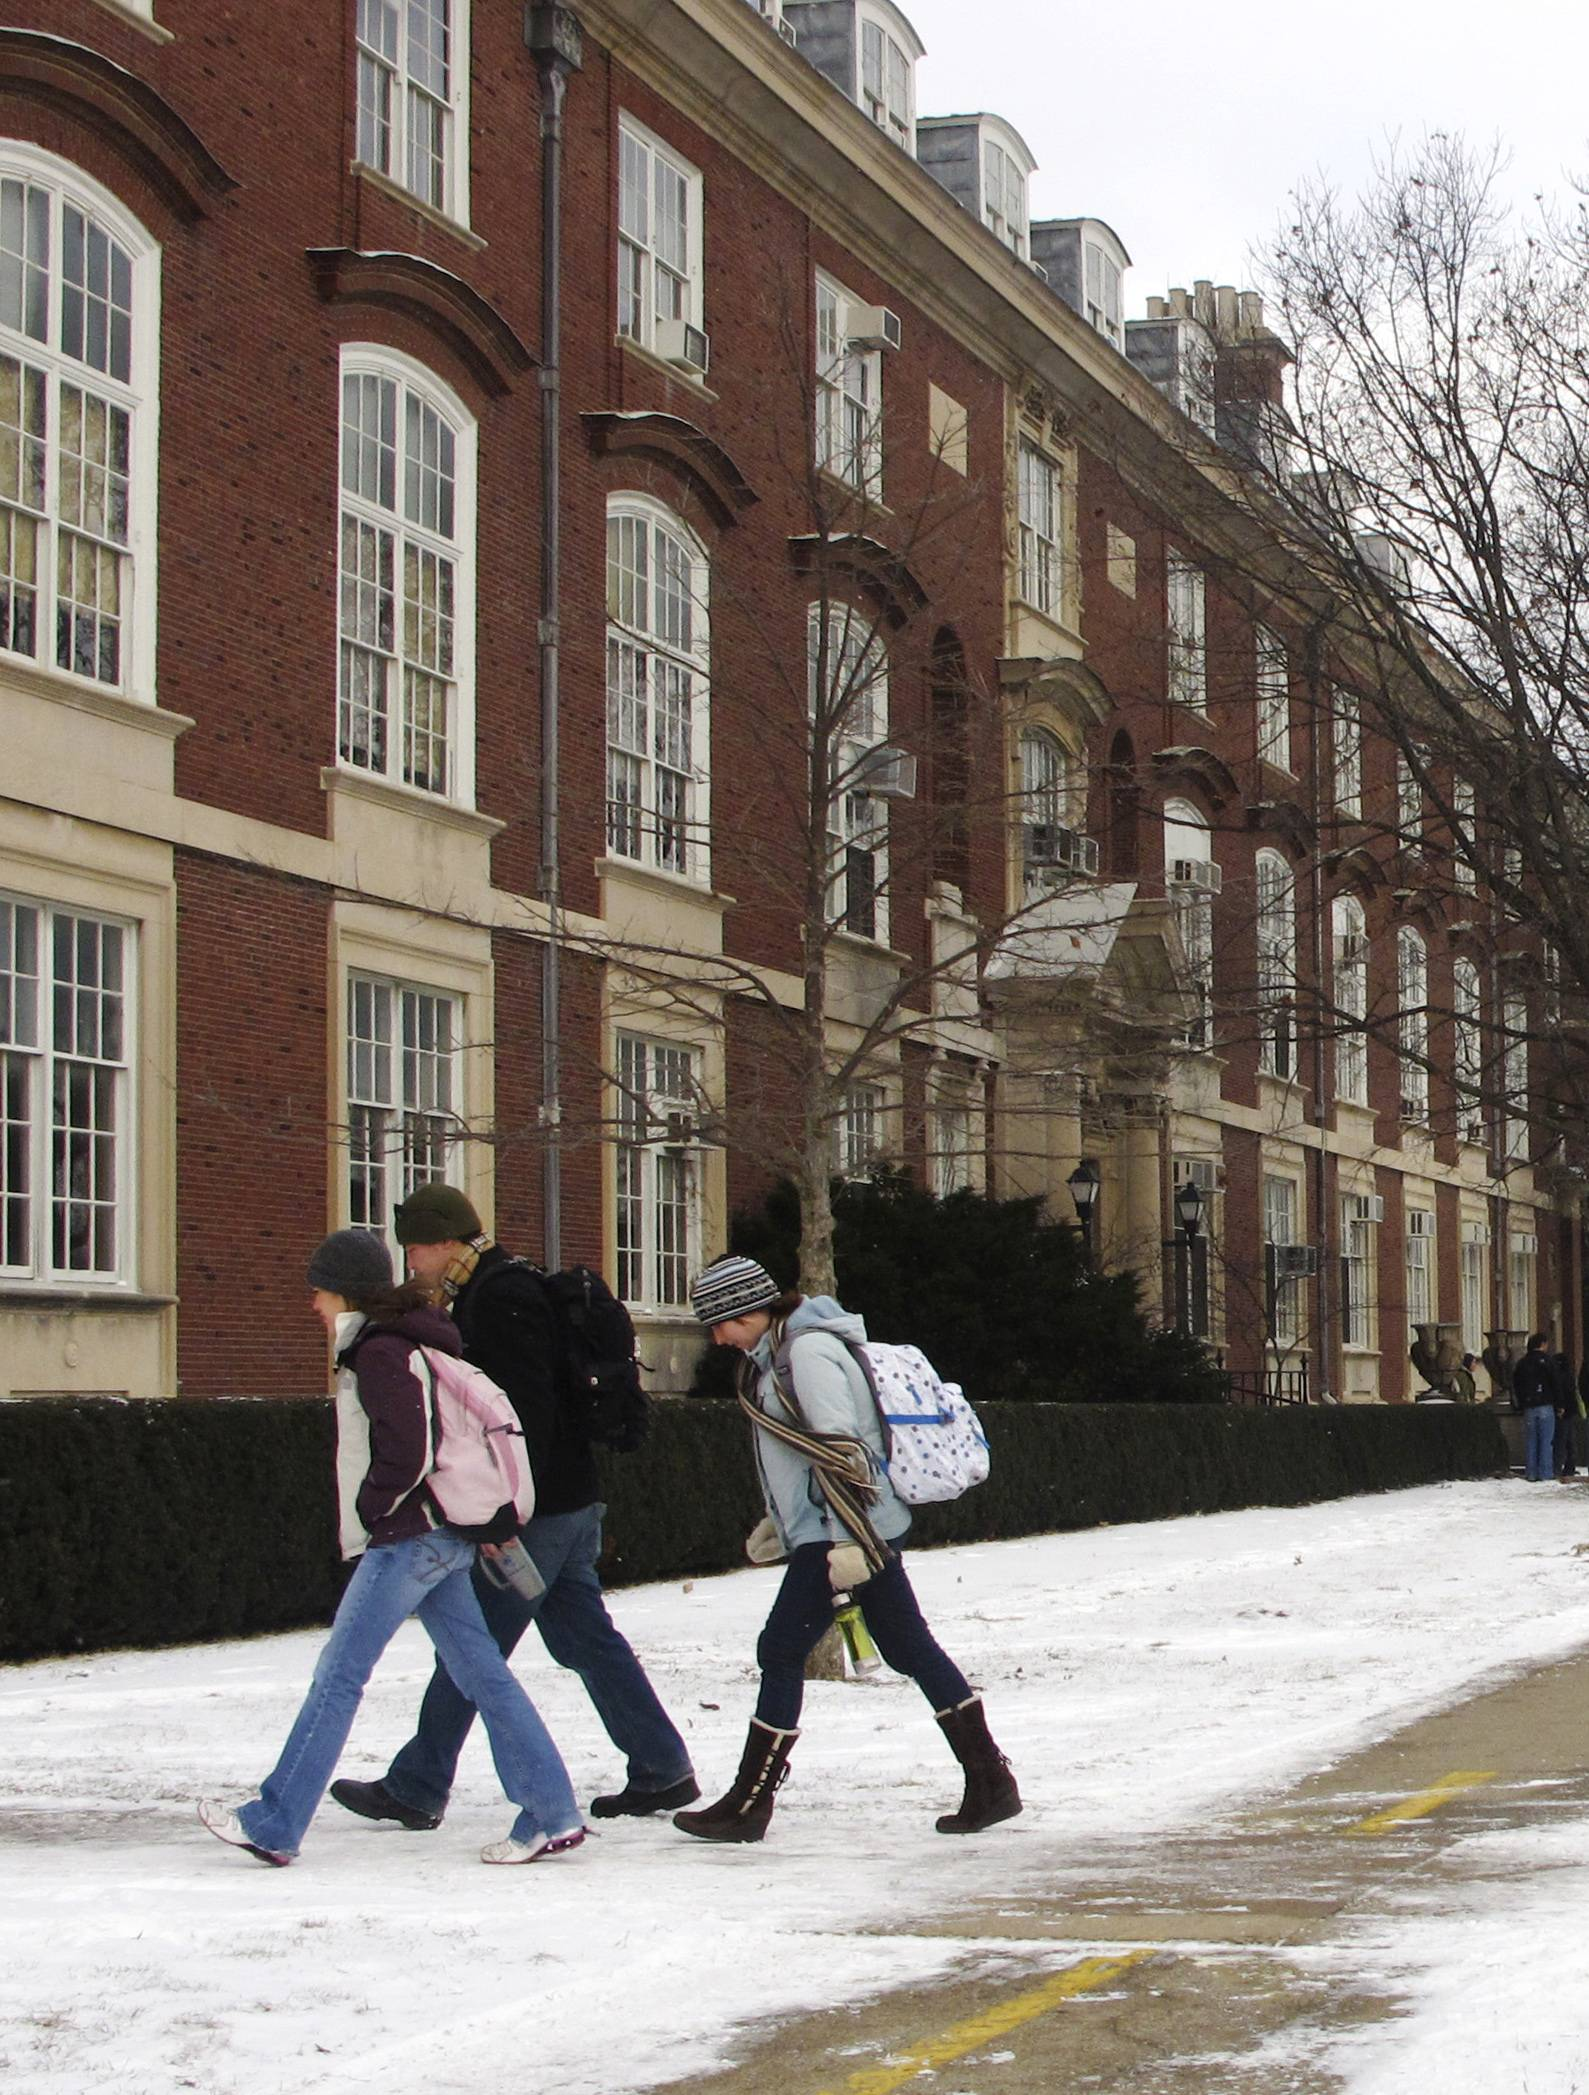 Students walk toward the Architecture Building on the University of Illinois campus in Champaign. A review of University of Illinois finances shows the school has brought in more money than it has spent since 2013. But it has put off more than a billion dollars in maintenance.